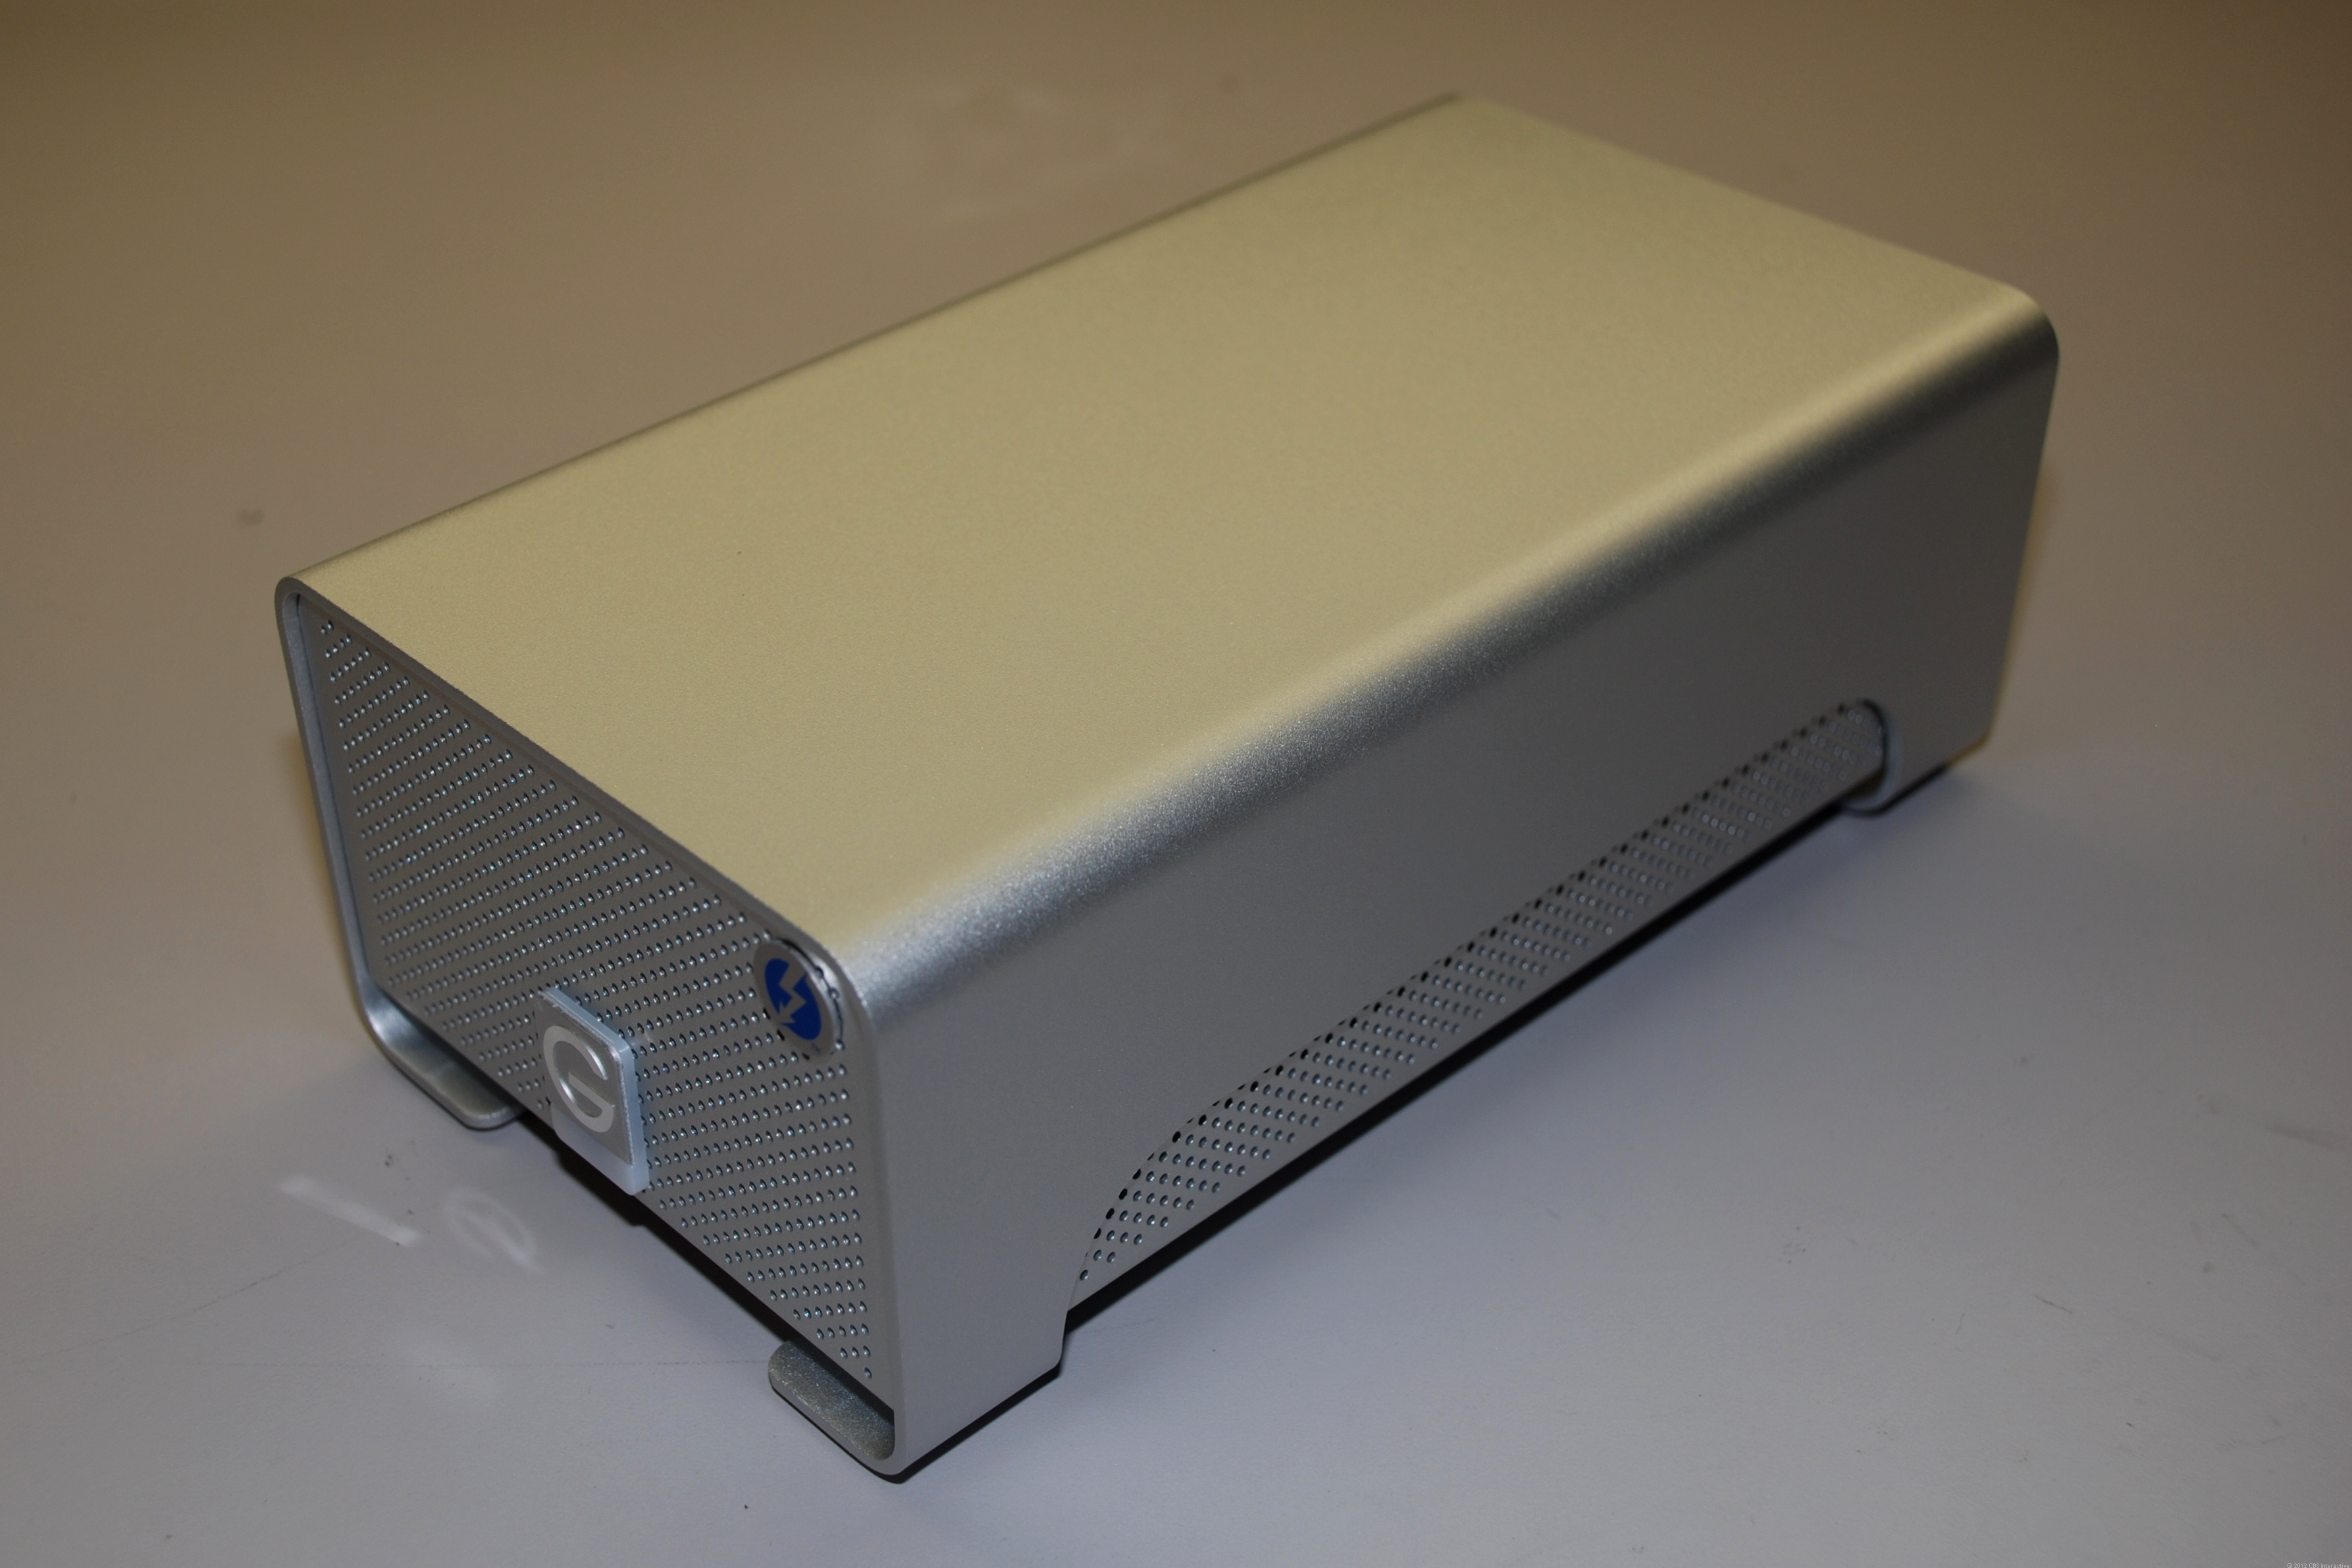 The G-RAID with Thunderbolt drive from G-Technology.